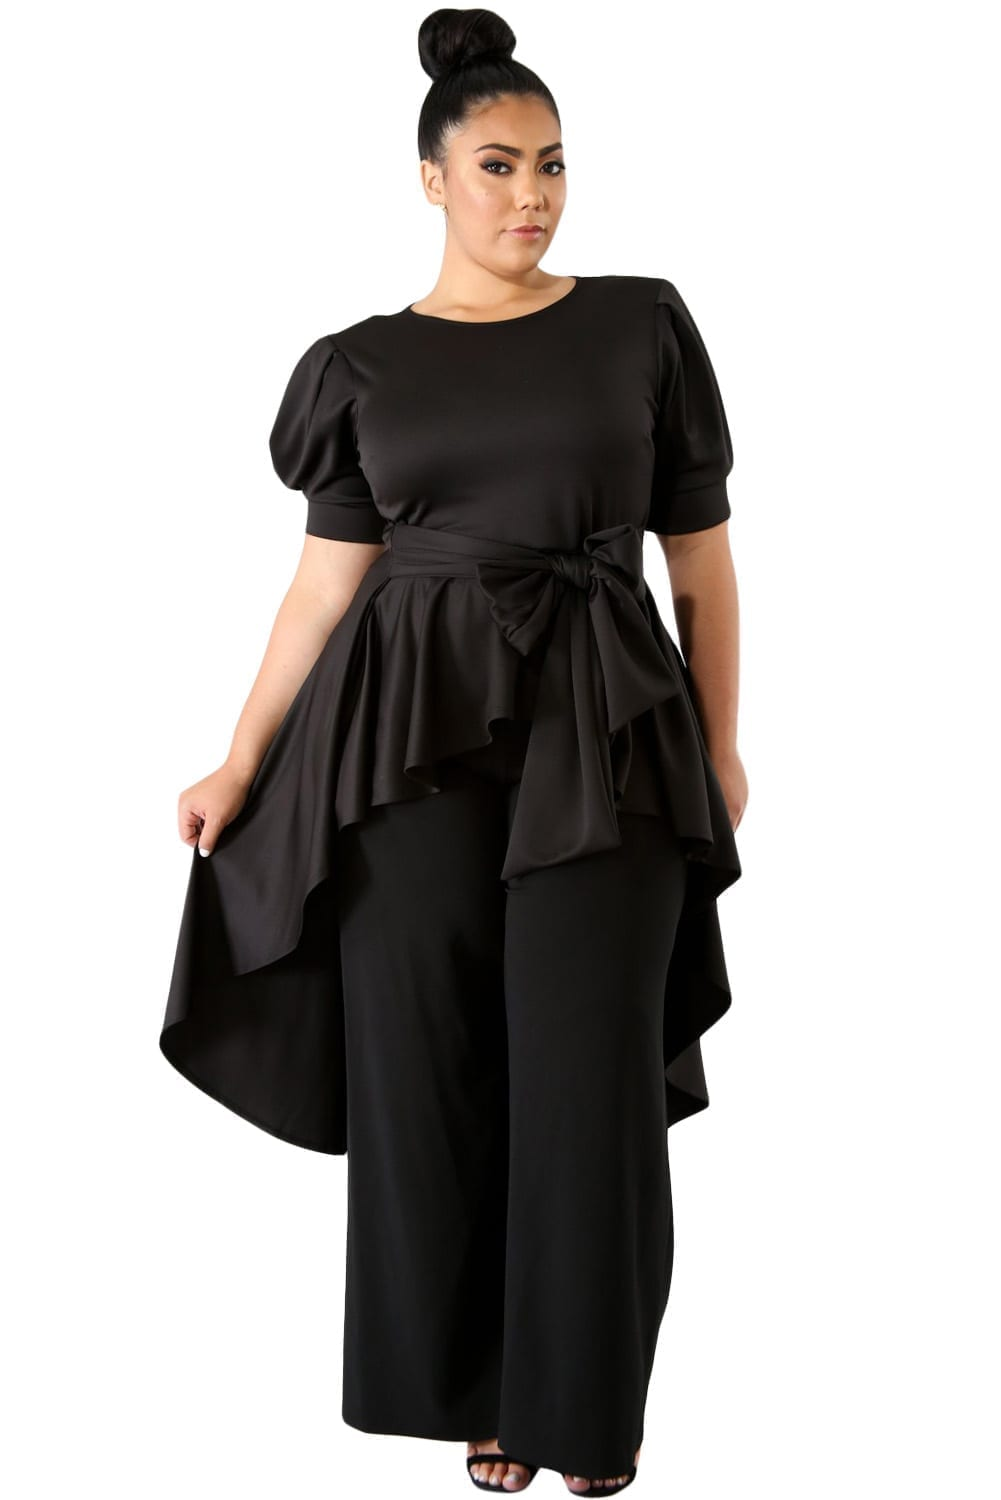 Black-Puff-Long-Tail-Plus-Size-Top-LC251